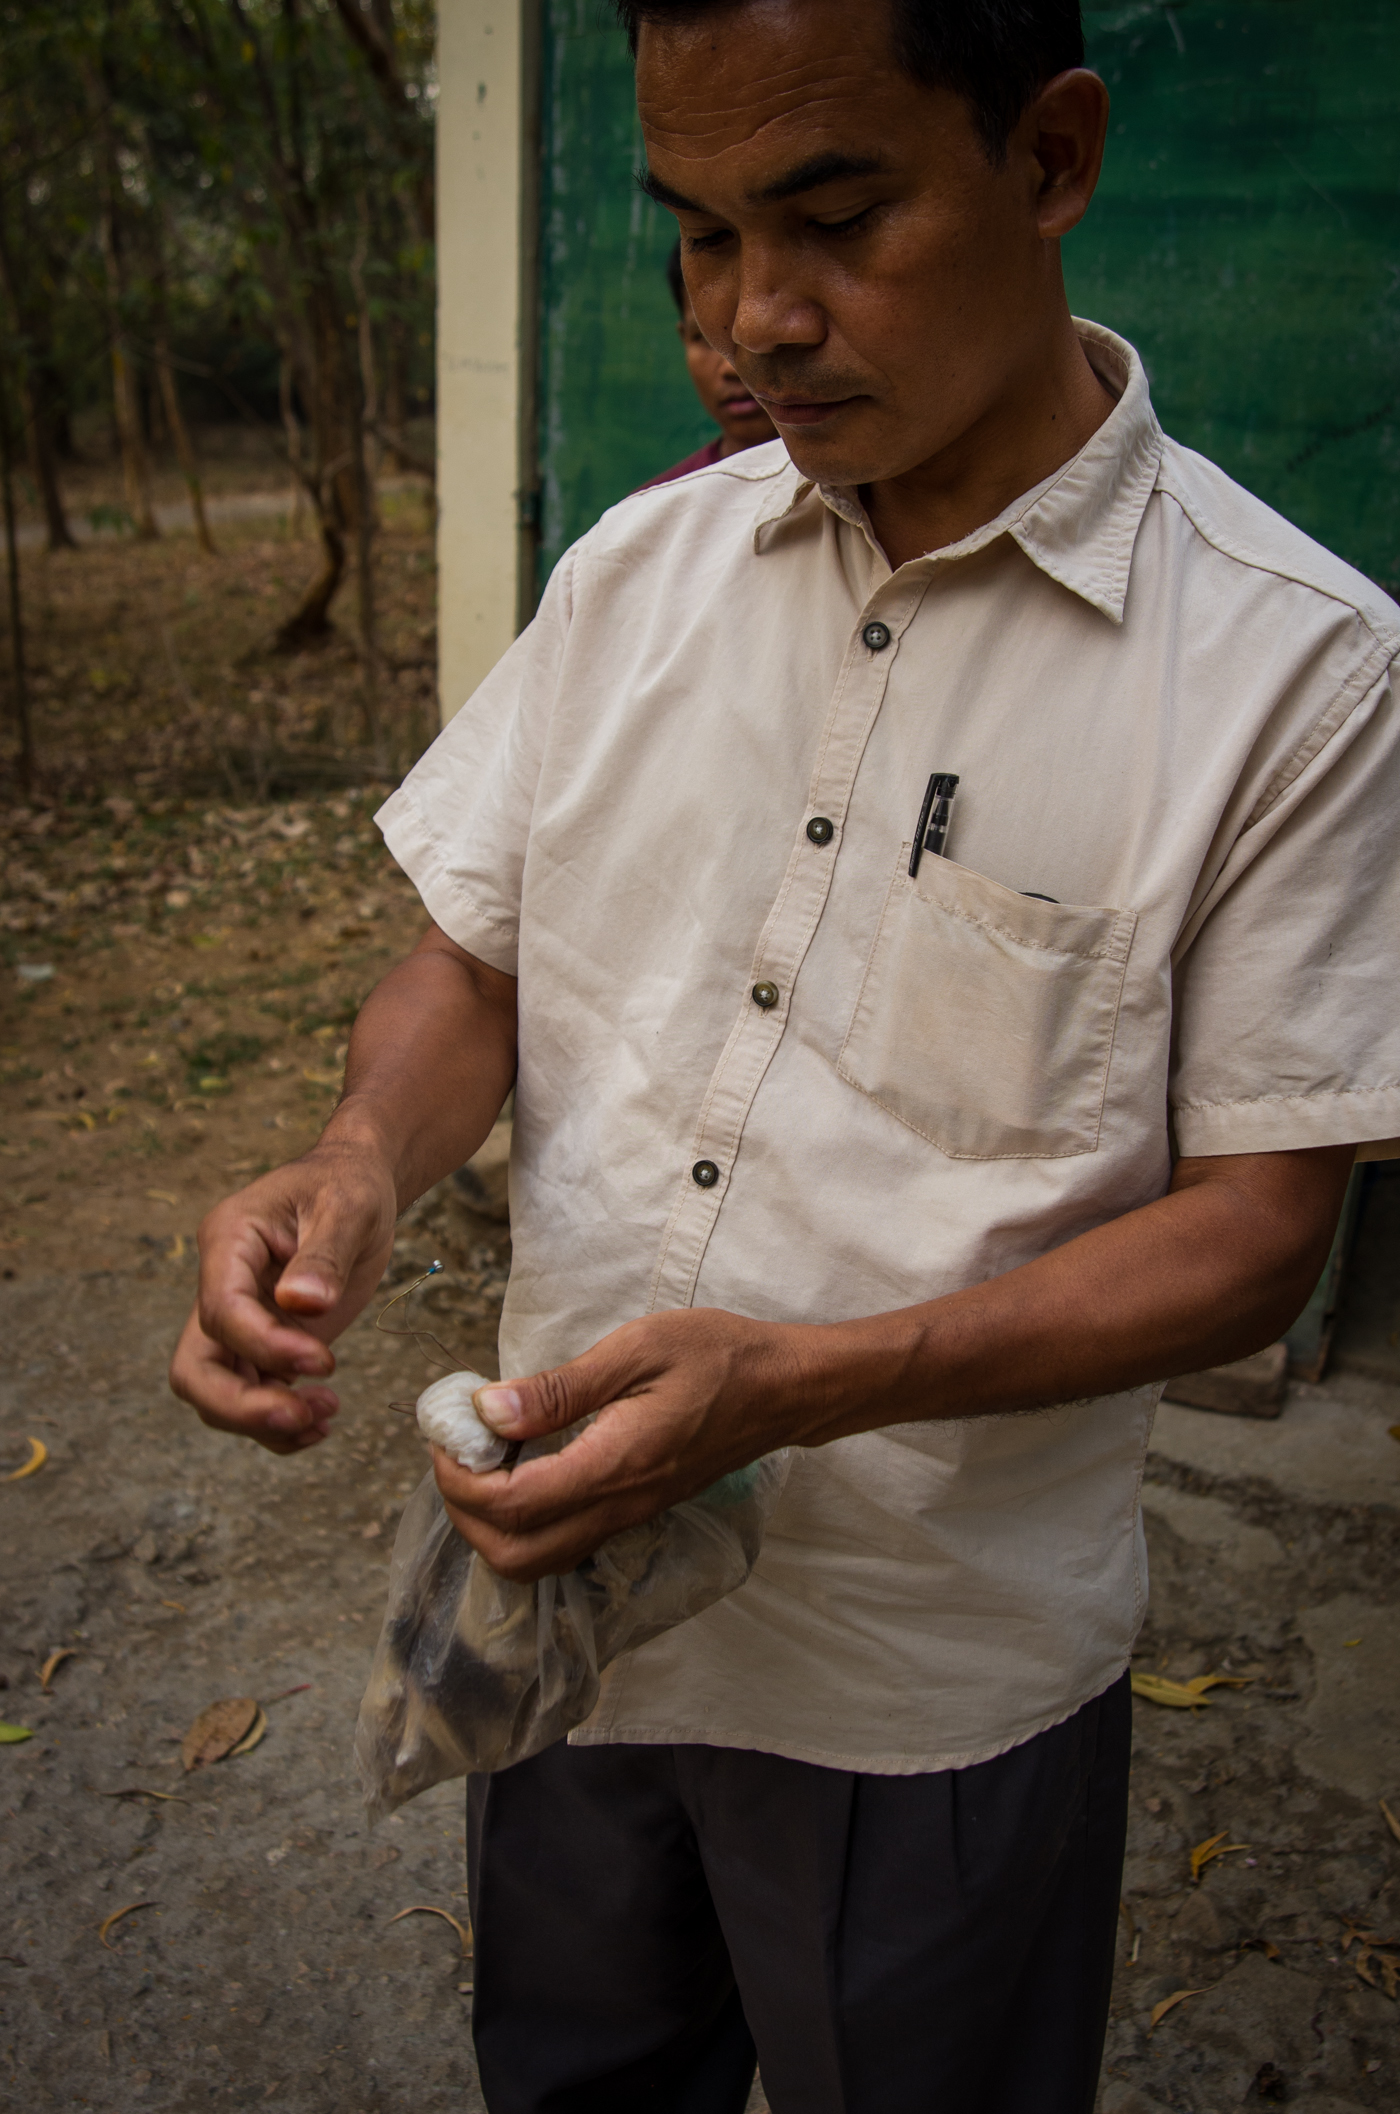 Pakseng A.Sangma, Meghalaya forest manager in Tura, showing confiscated pieces of illegally killed animals used for traditional medicine on the black market.